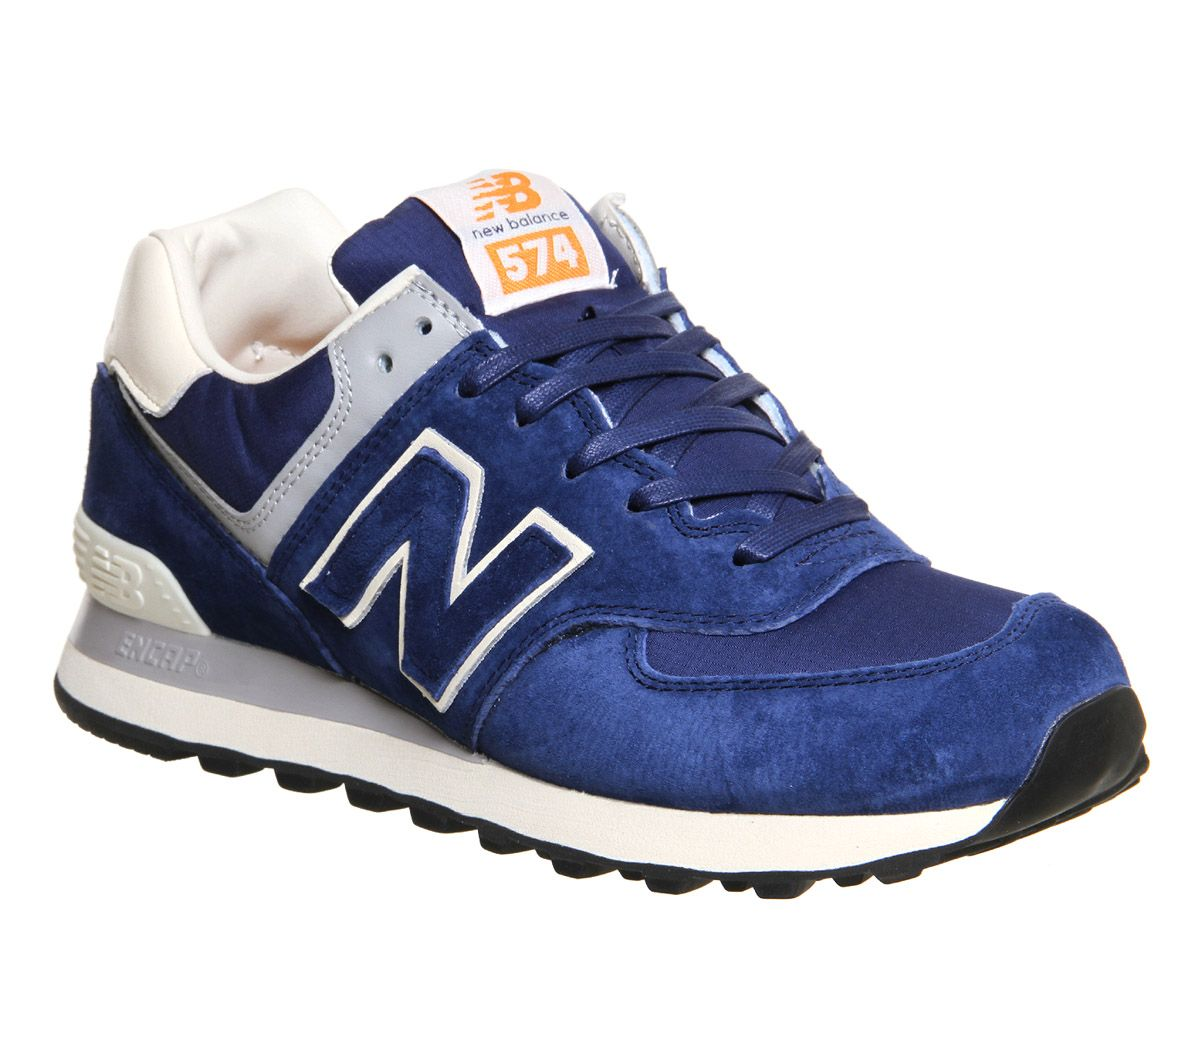 New Balance 574 Blue Ink - His trainers